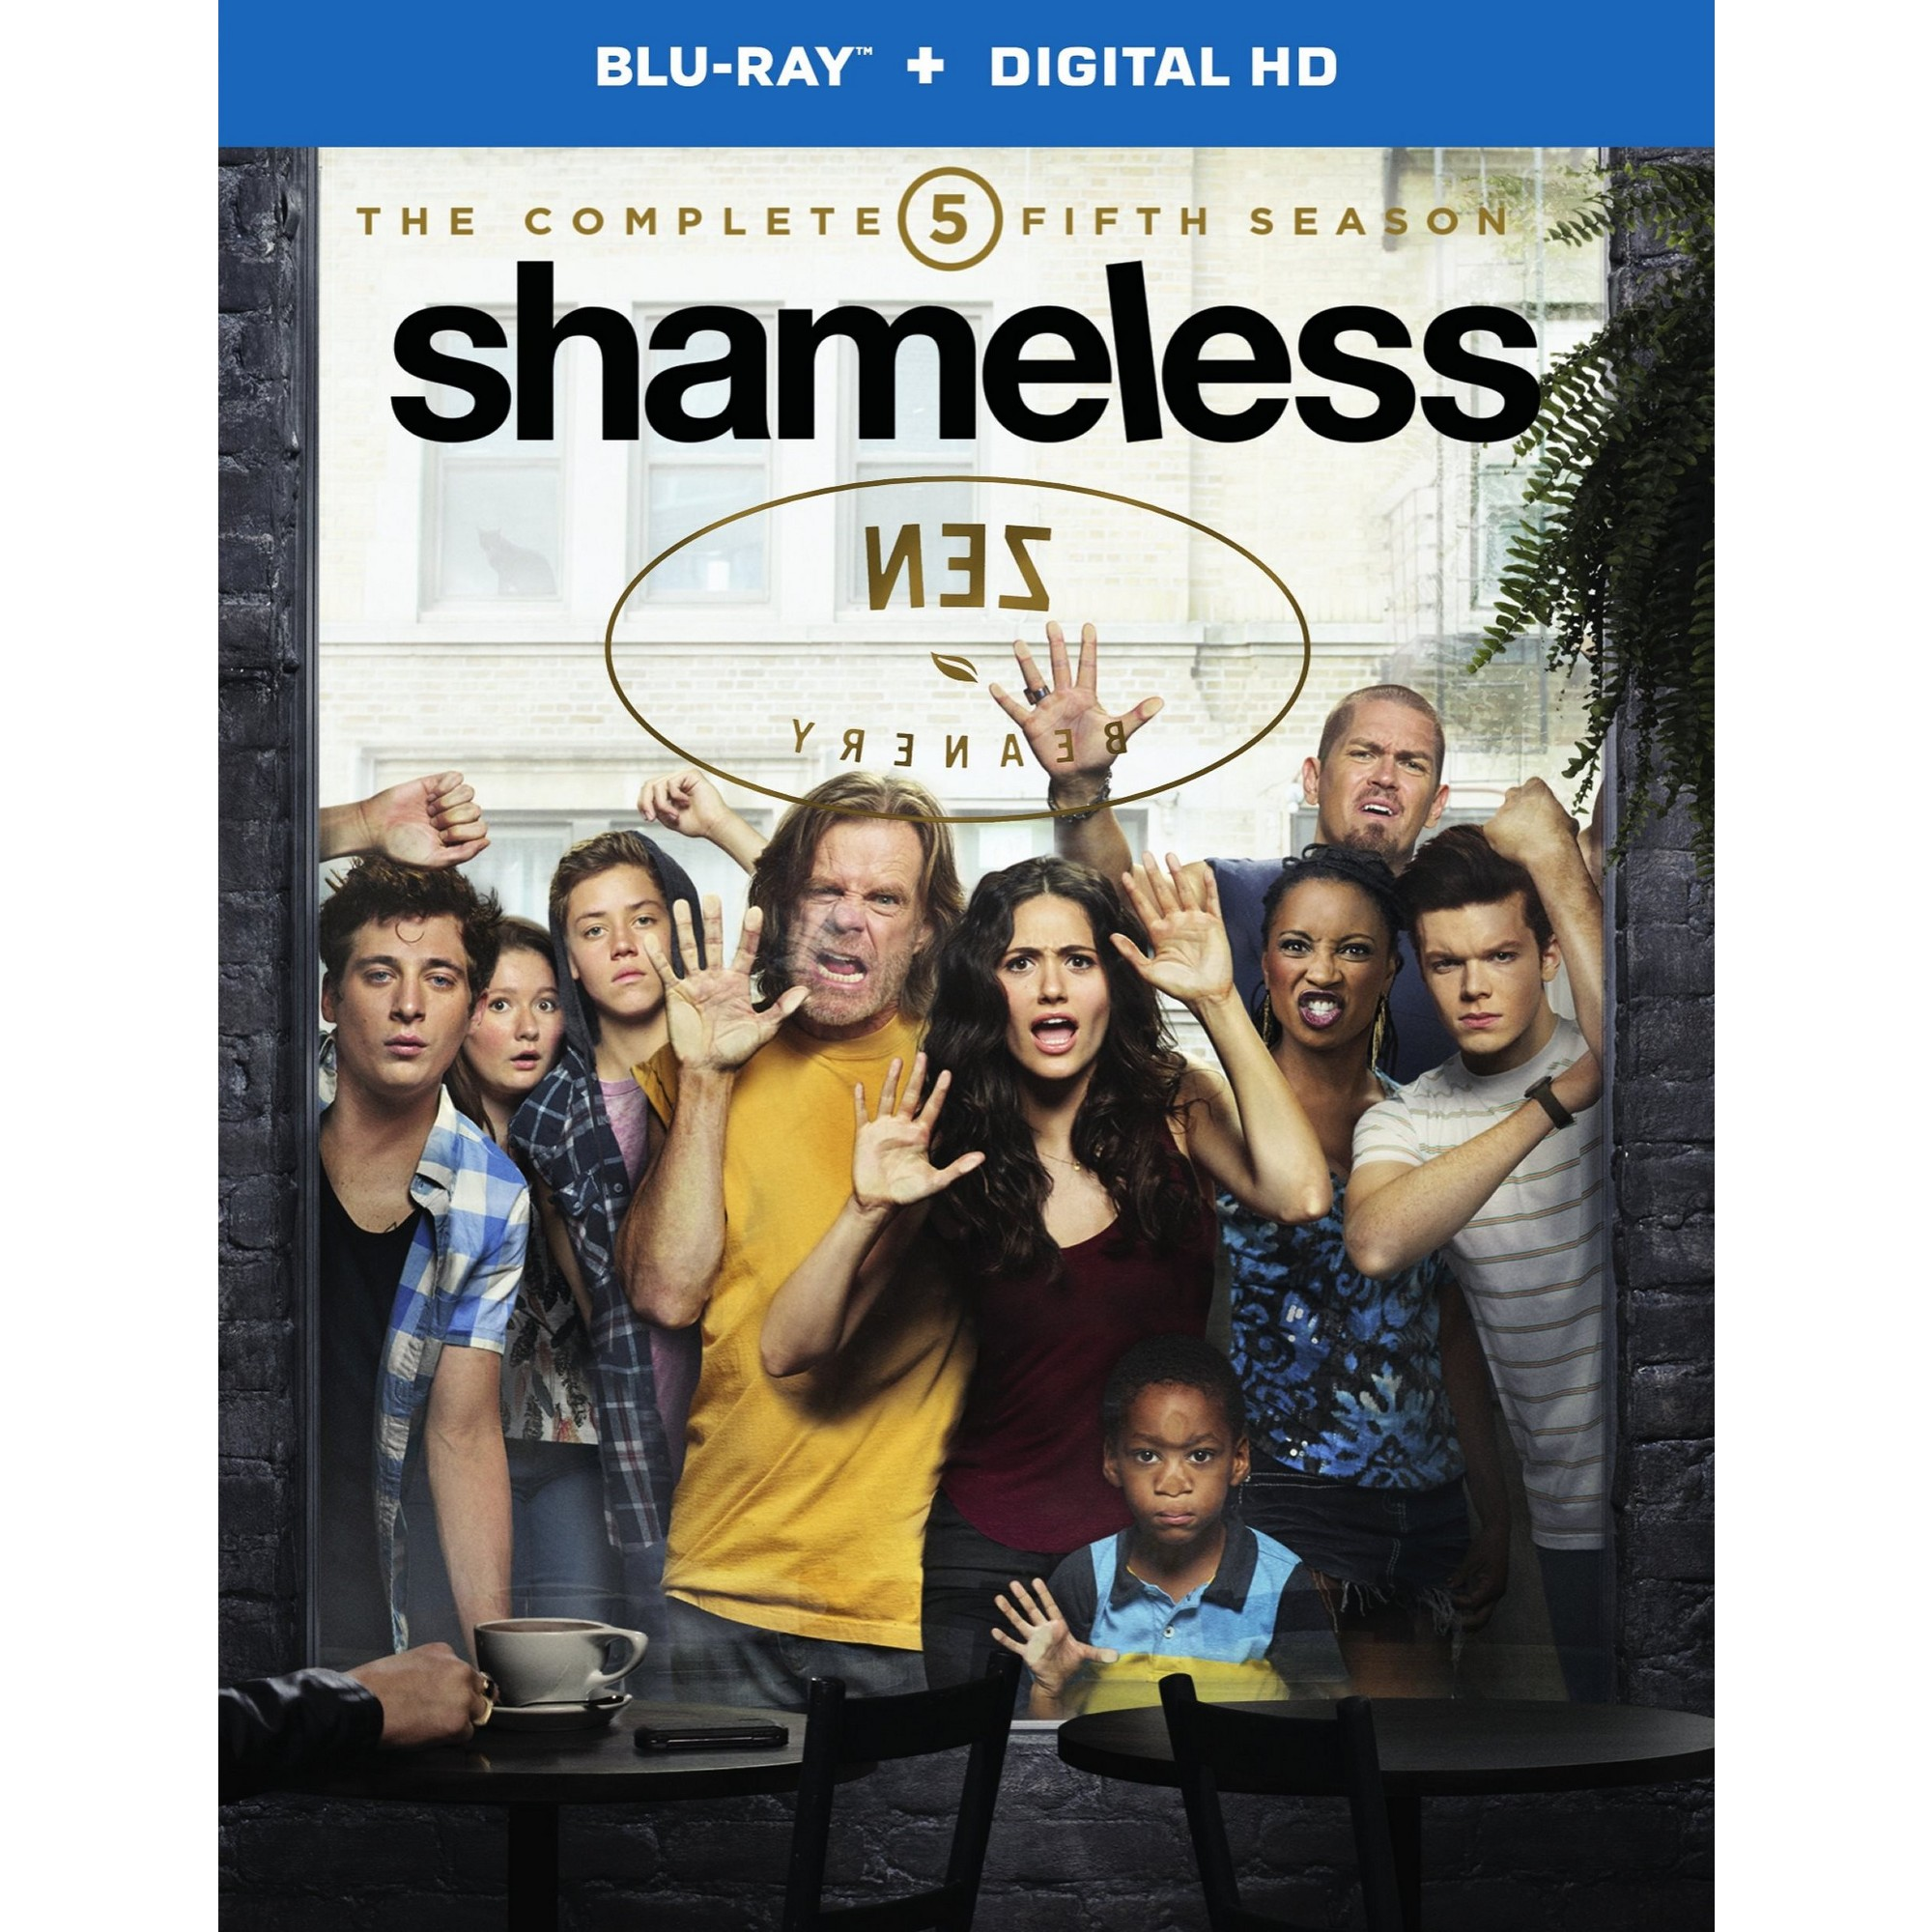 Shameless The Complete Fifth Season Blu Ray In 2021 Shameless Season Shameless Tv Series Shameless Season 5